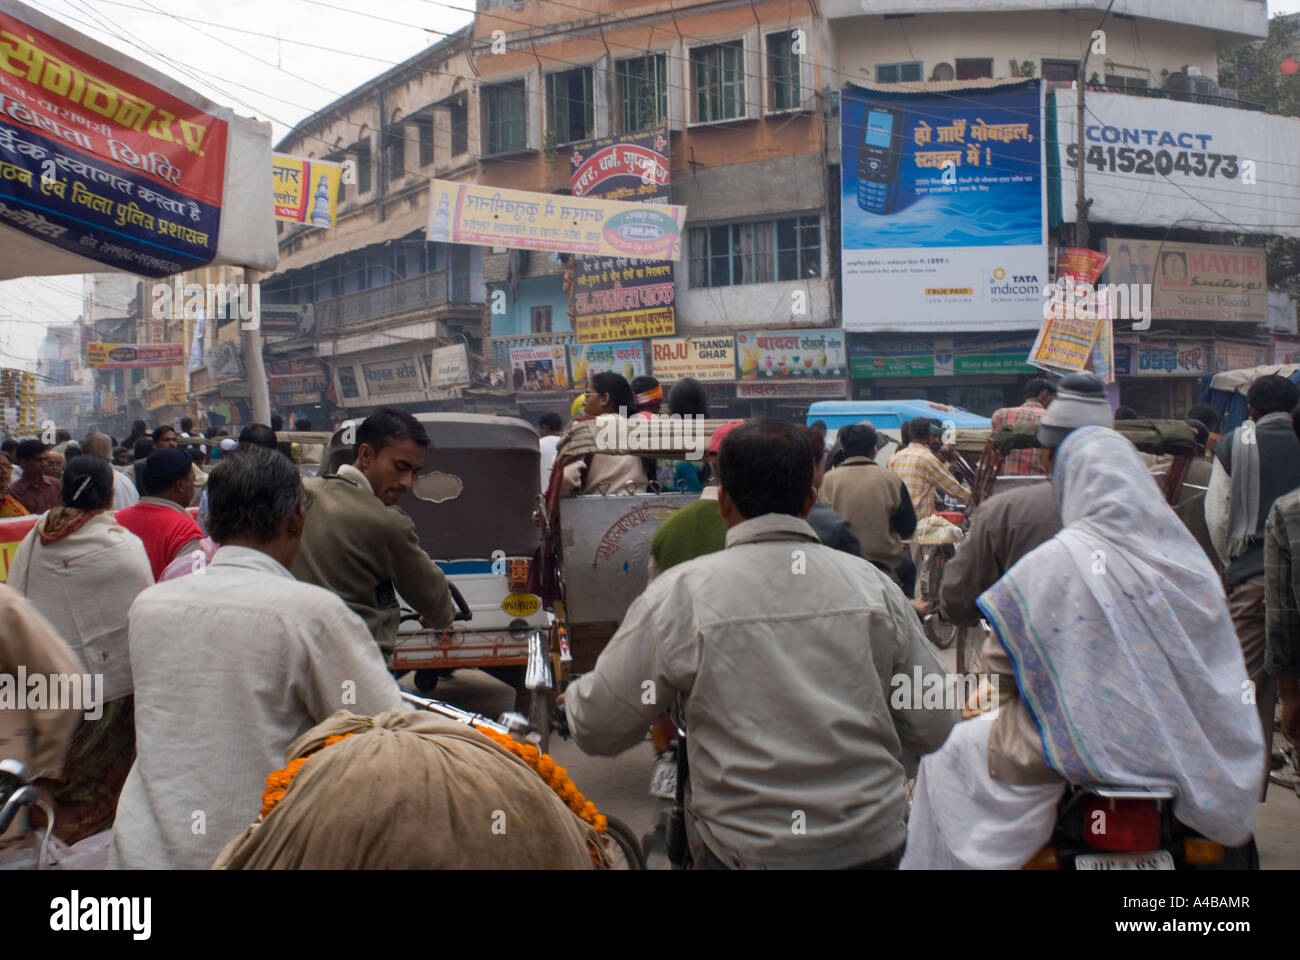 Stock image of crowded street with rickshaws people cars and billboards in Varanasi India in a traffic jam - Stock Image